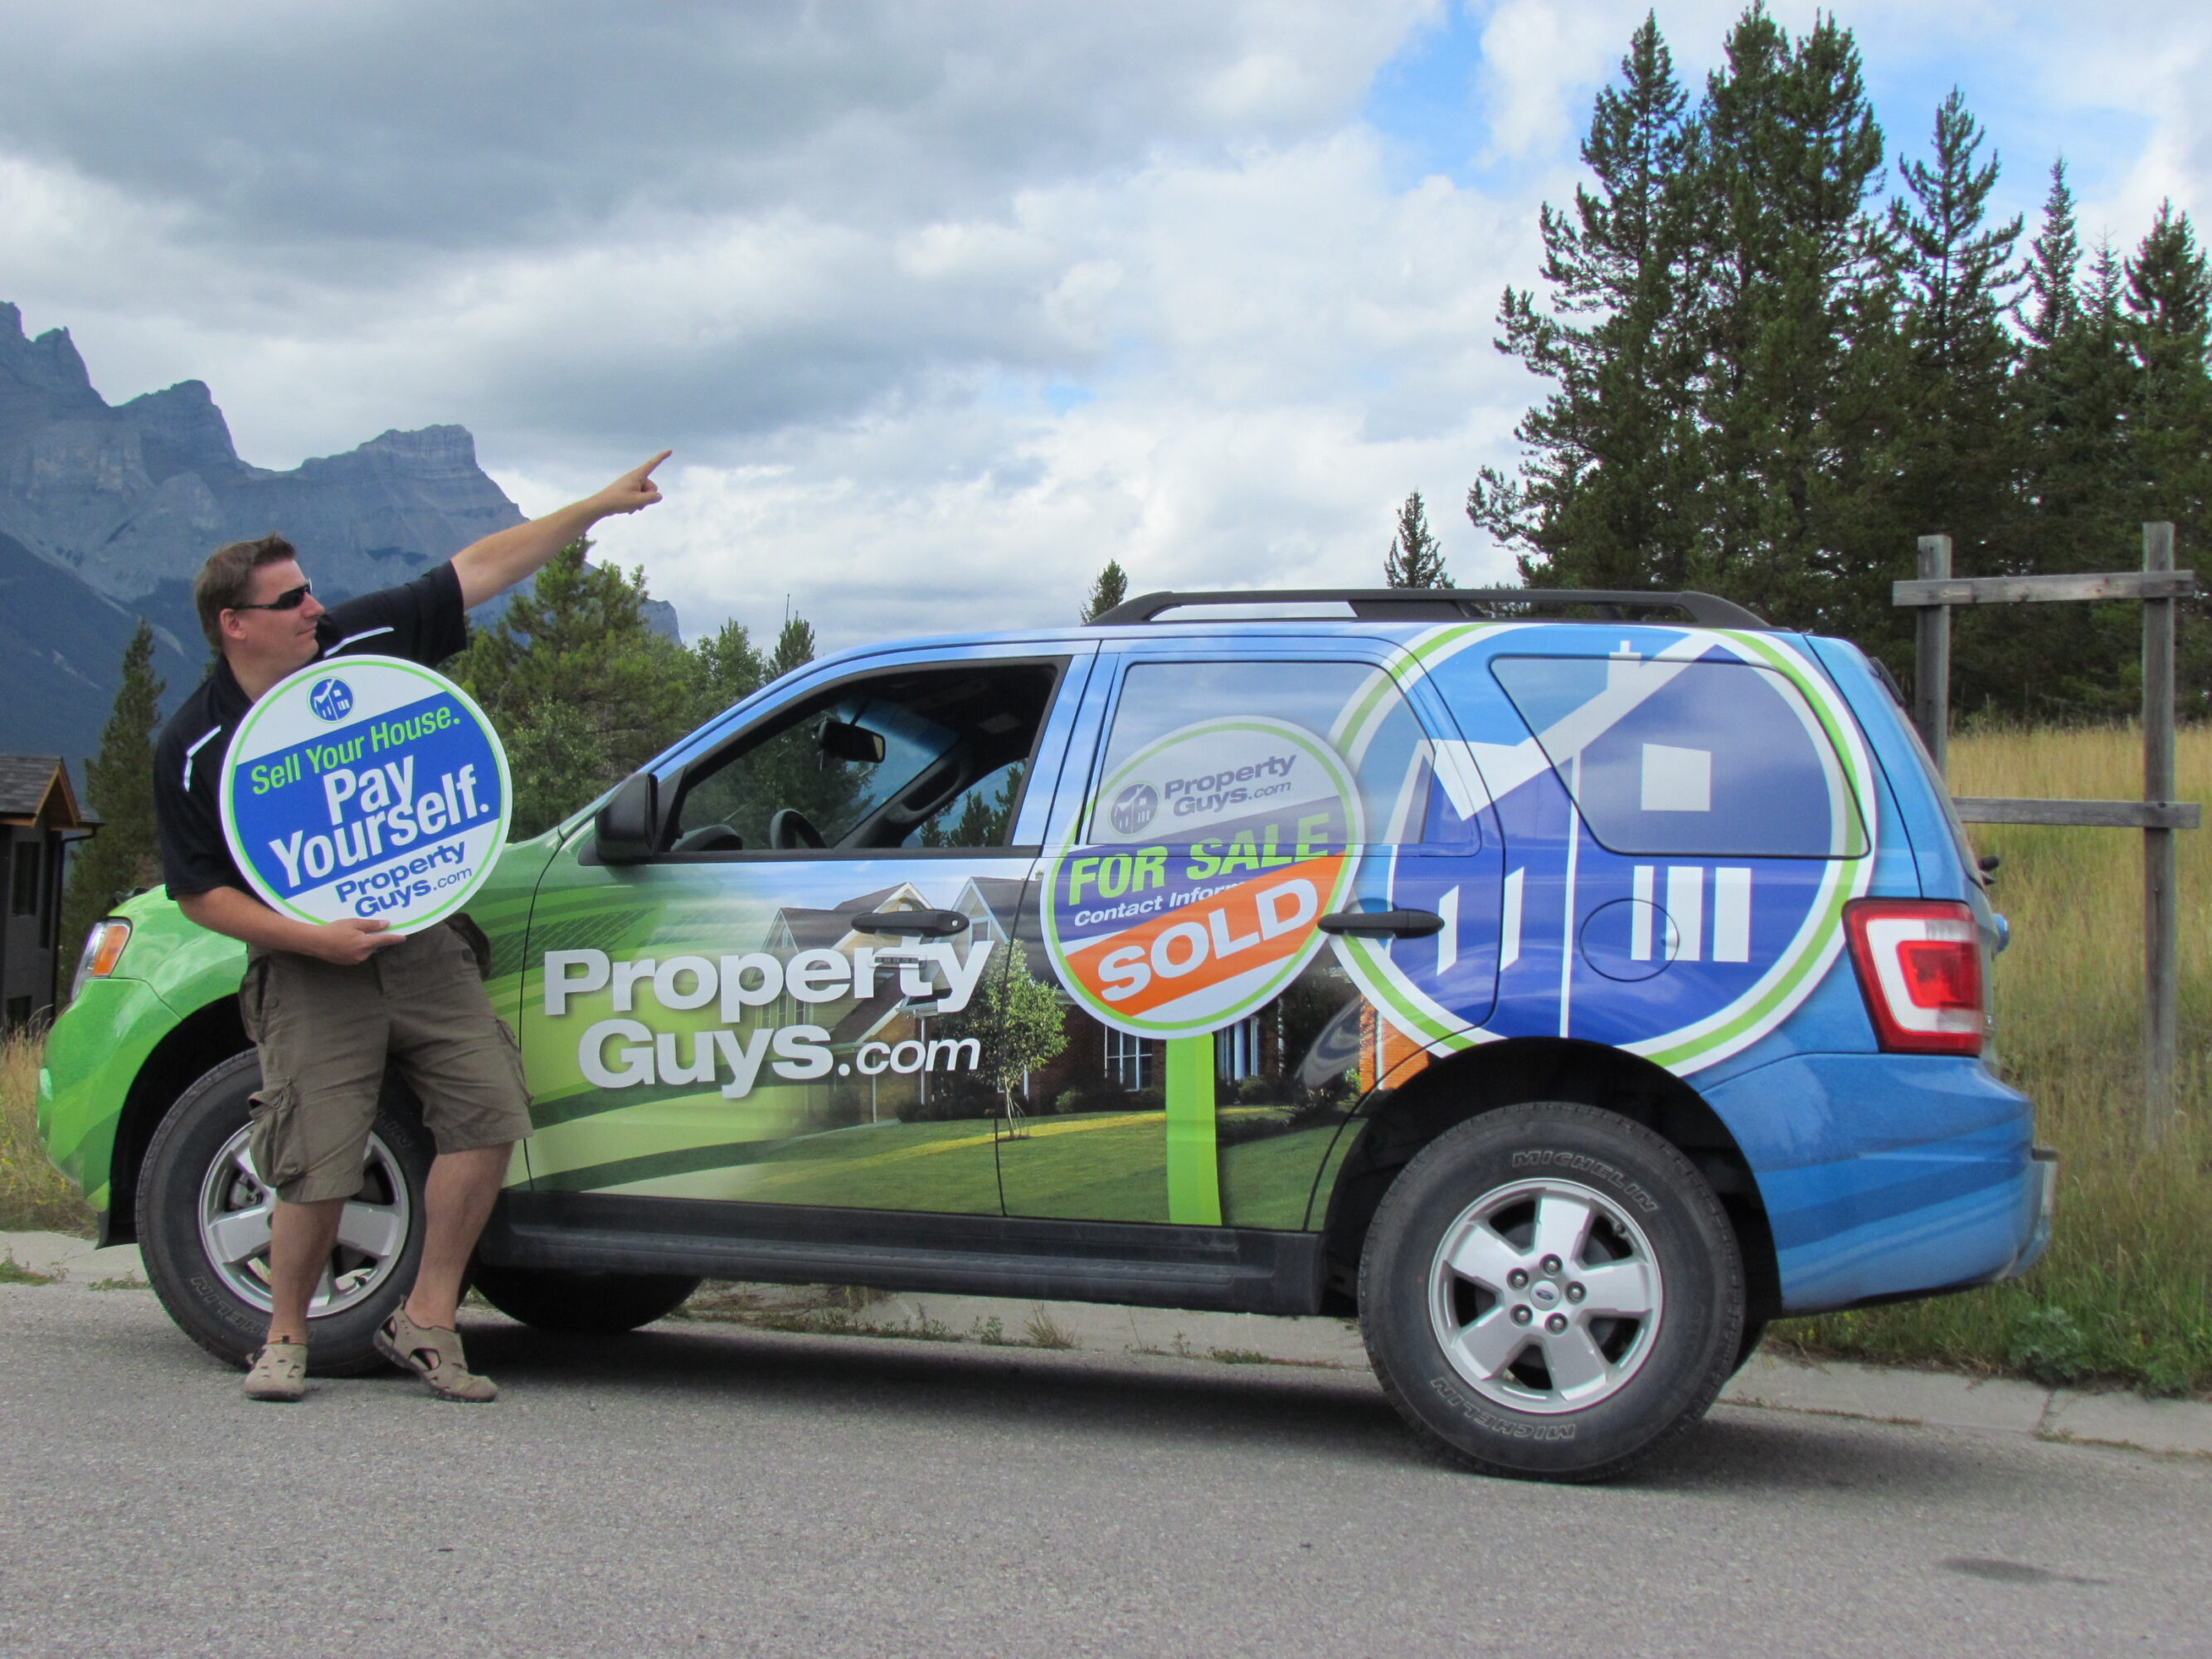 Christoph Braier with wrapped PropertyGuys.com vehicle